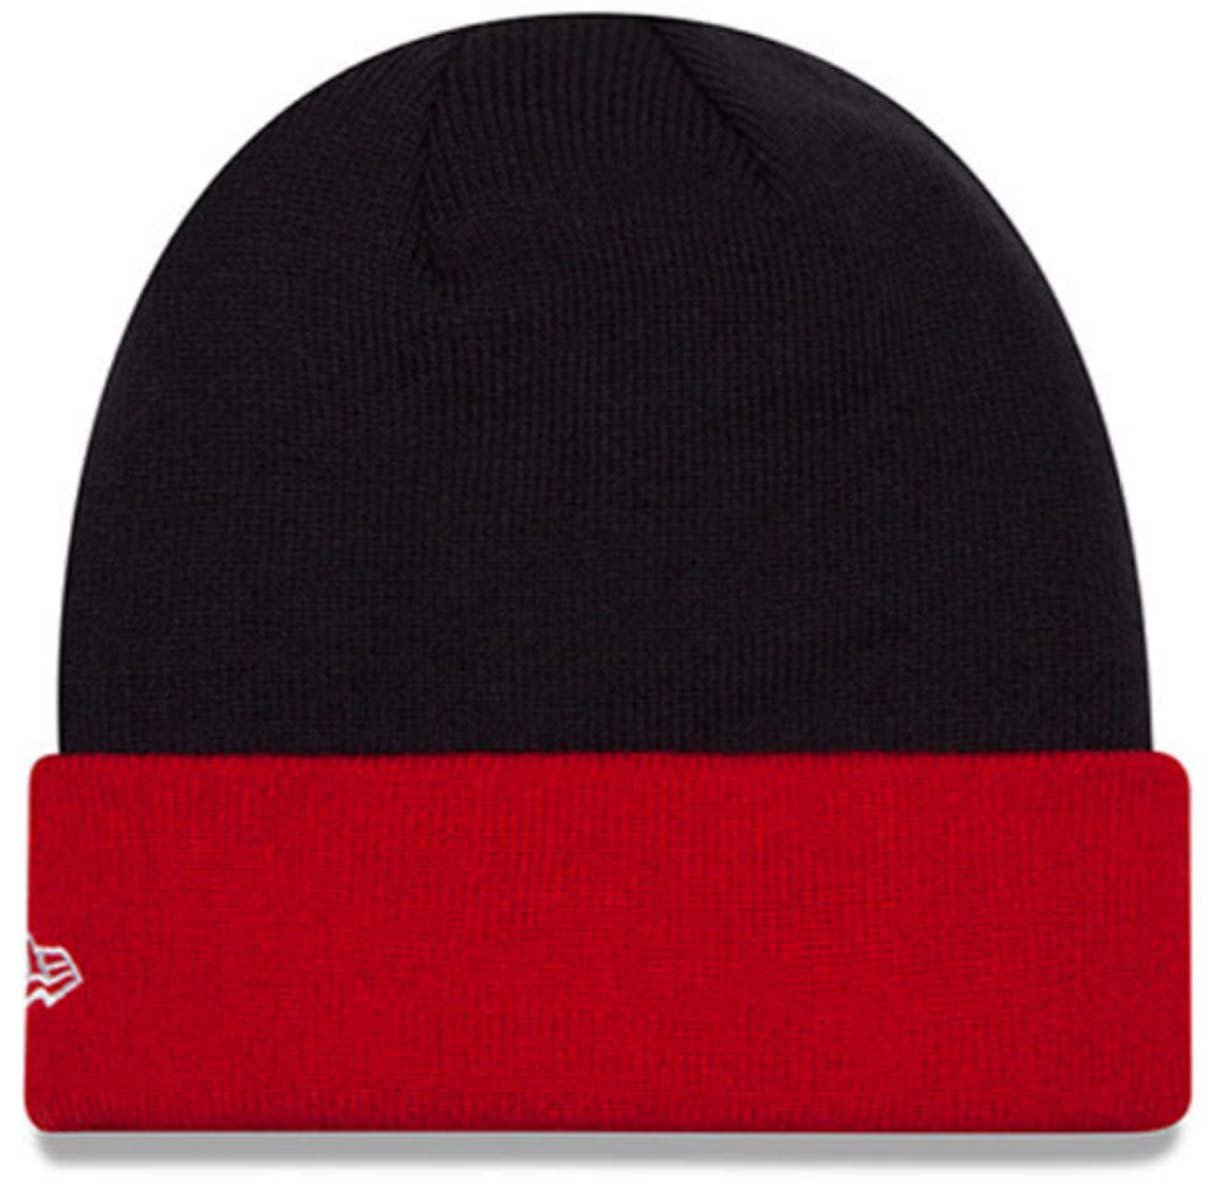 c3130123f89 Amazon.com  Authentic Cleveland Indians Basic Cuff Knit Beanie New Era   Sports   Outdoors